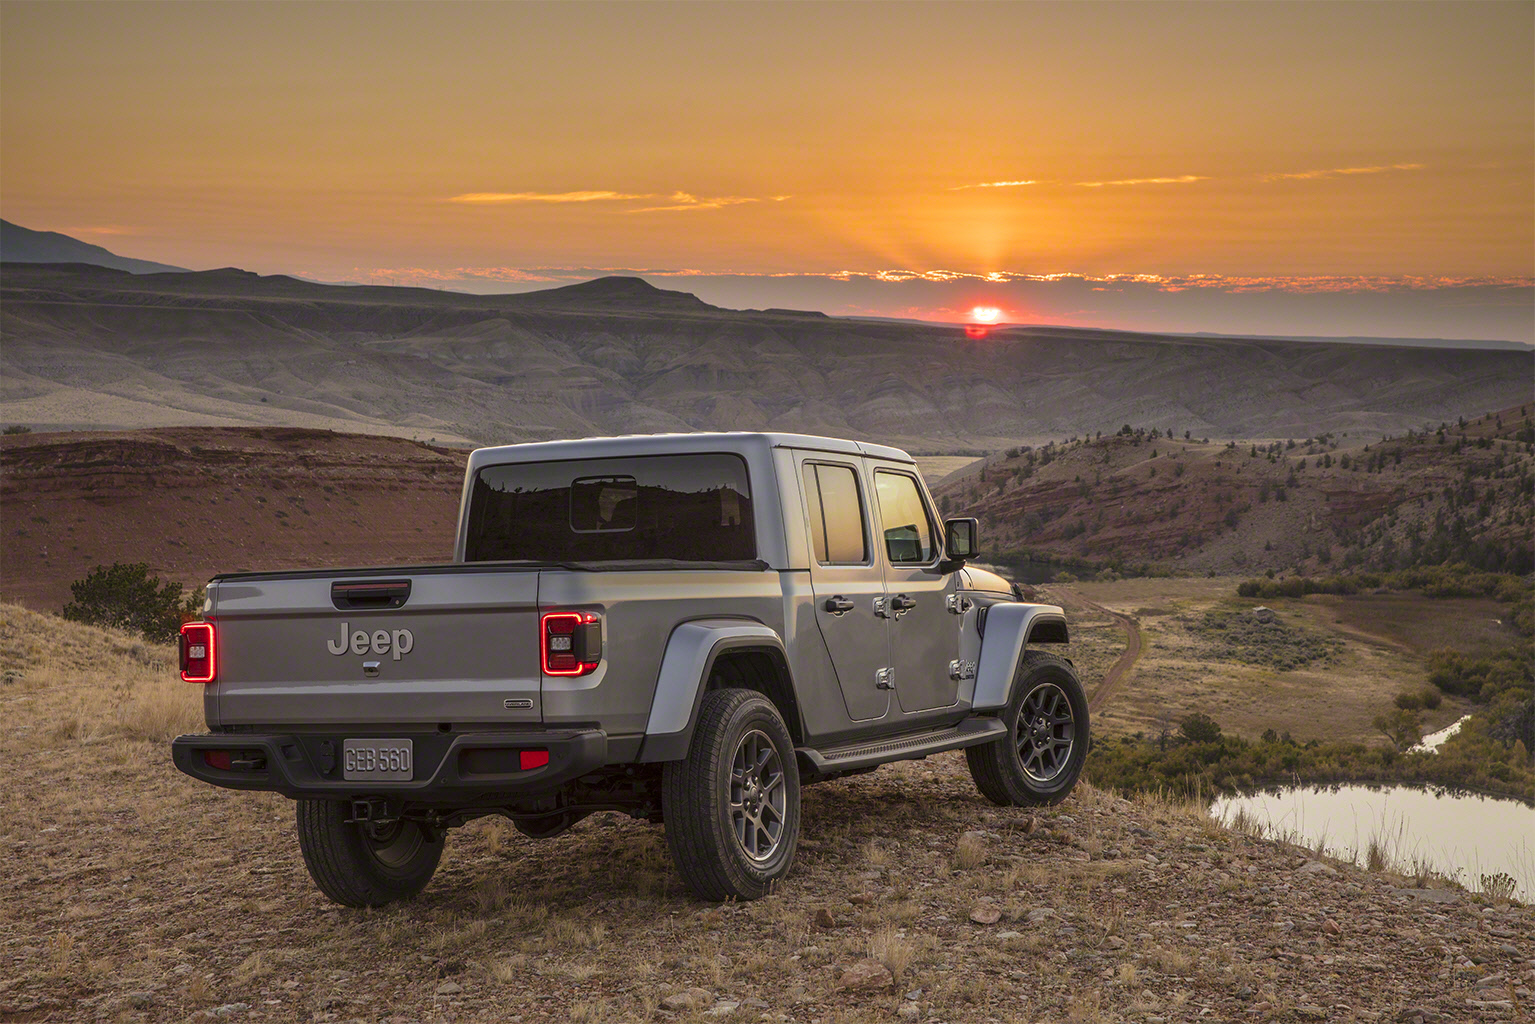 2020 Jeep Gladiator rear 34 sunset